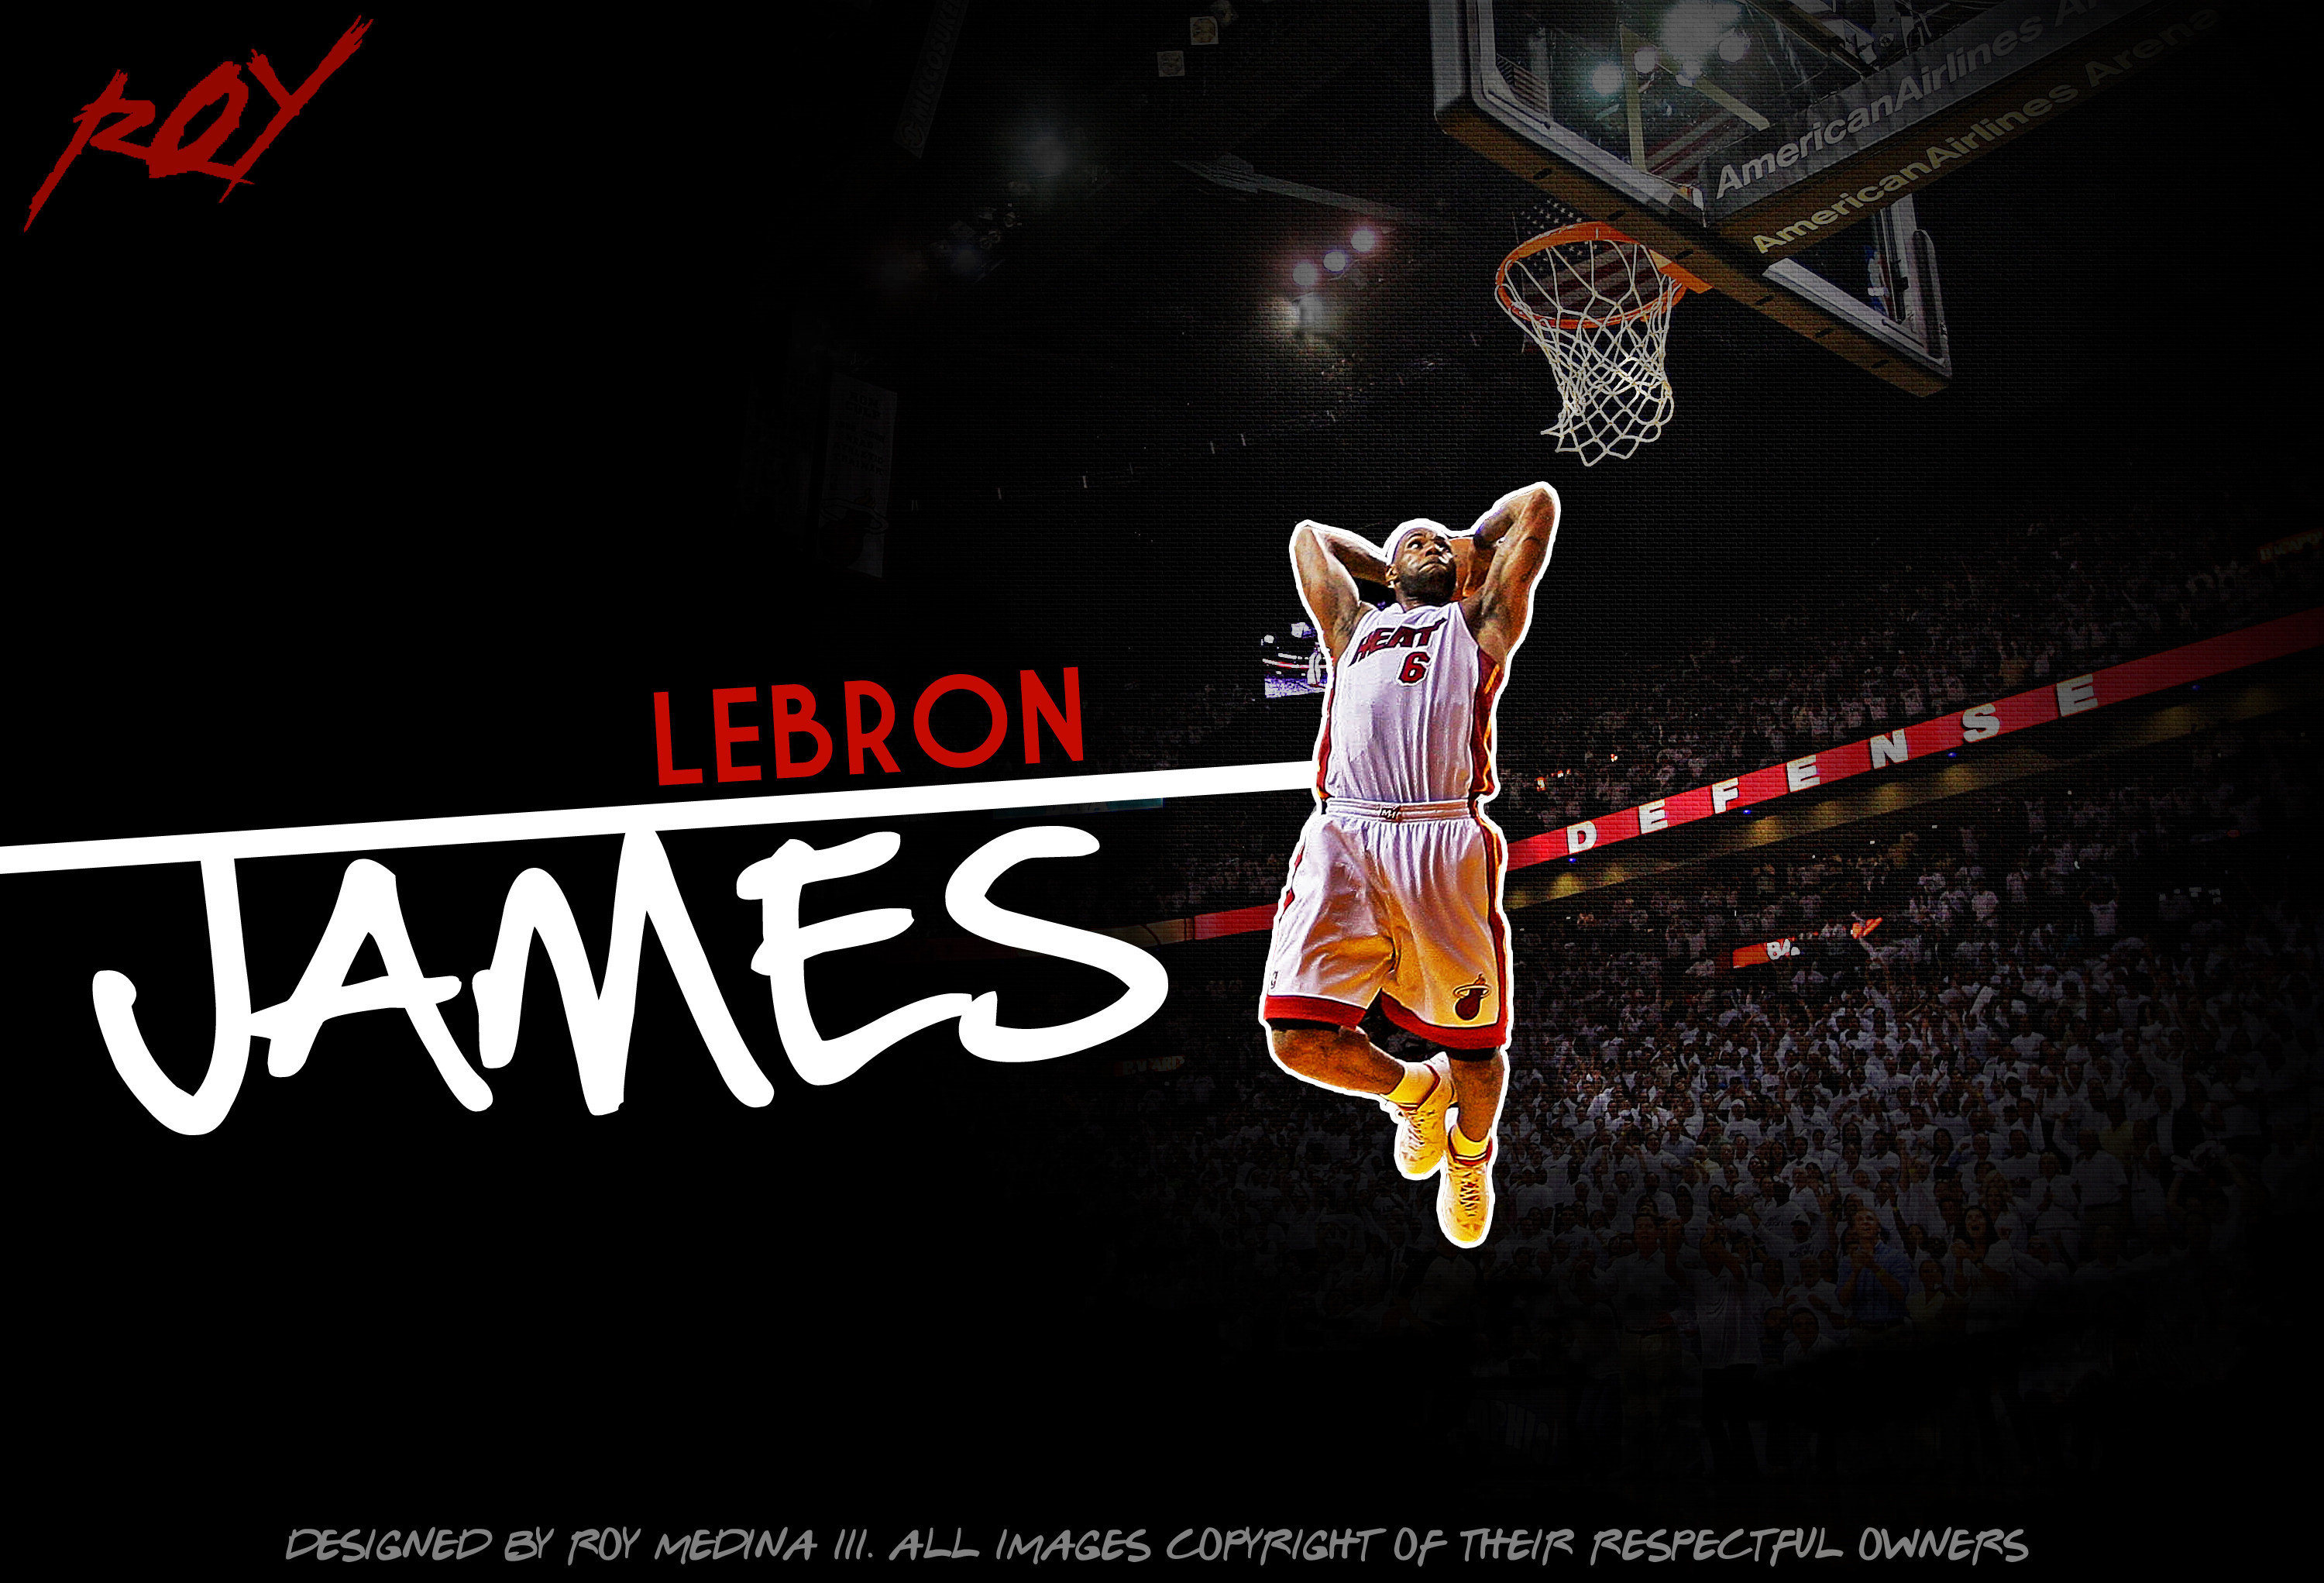 lebron james dunking wallpaper ·①